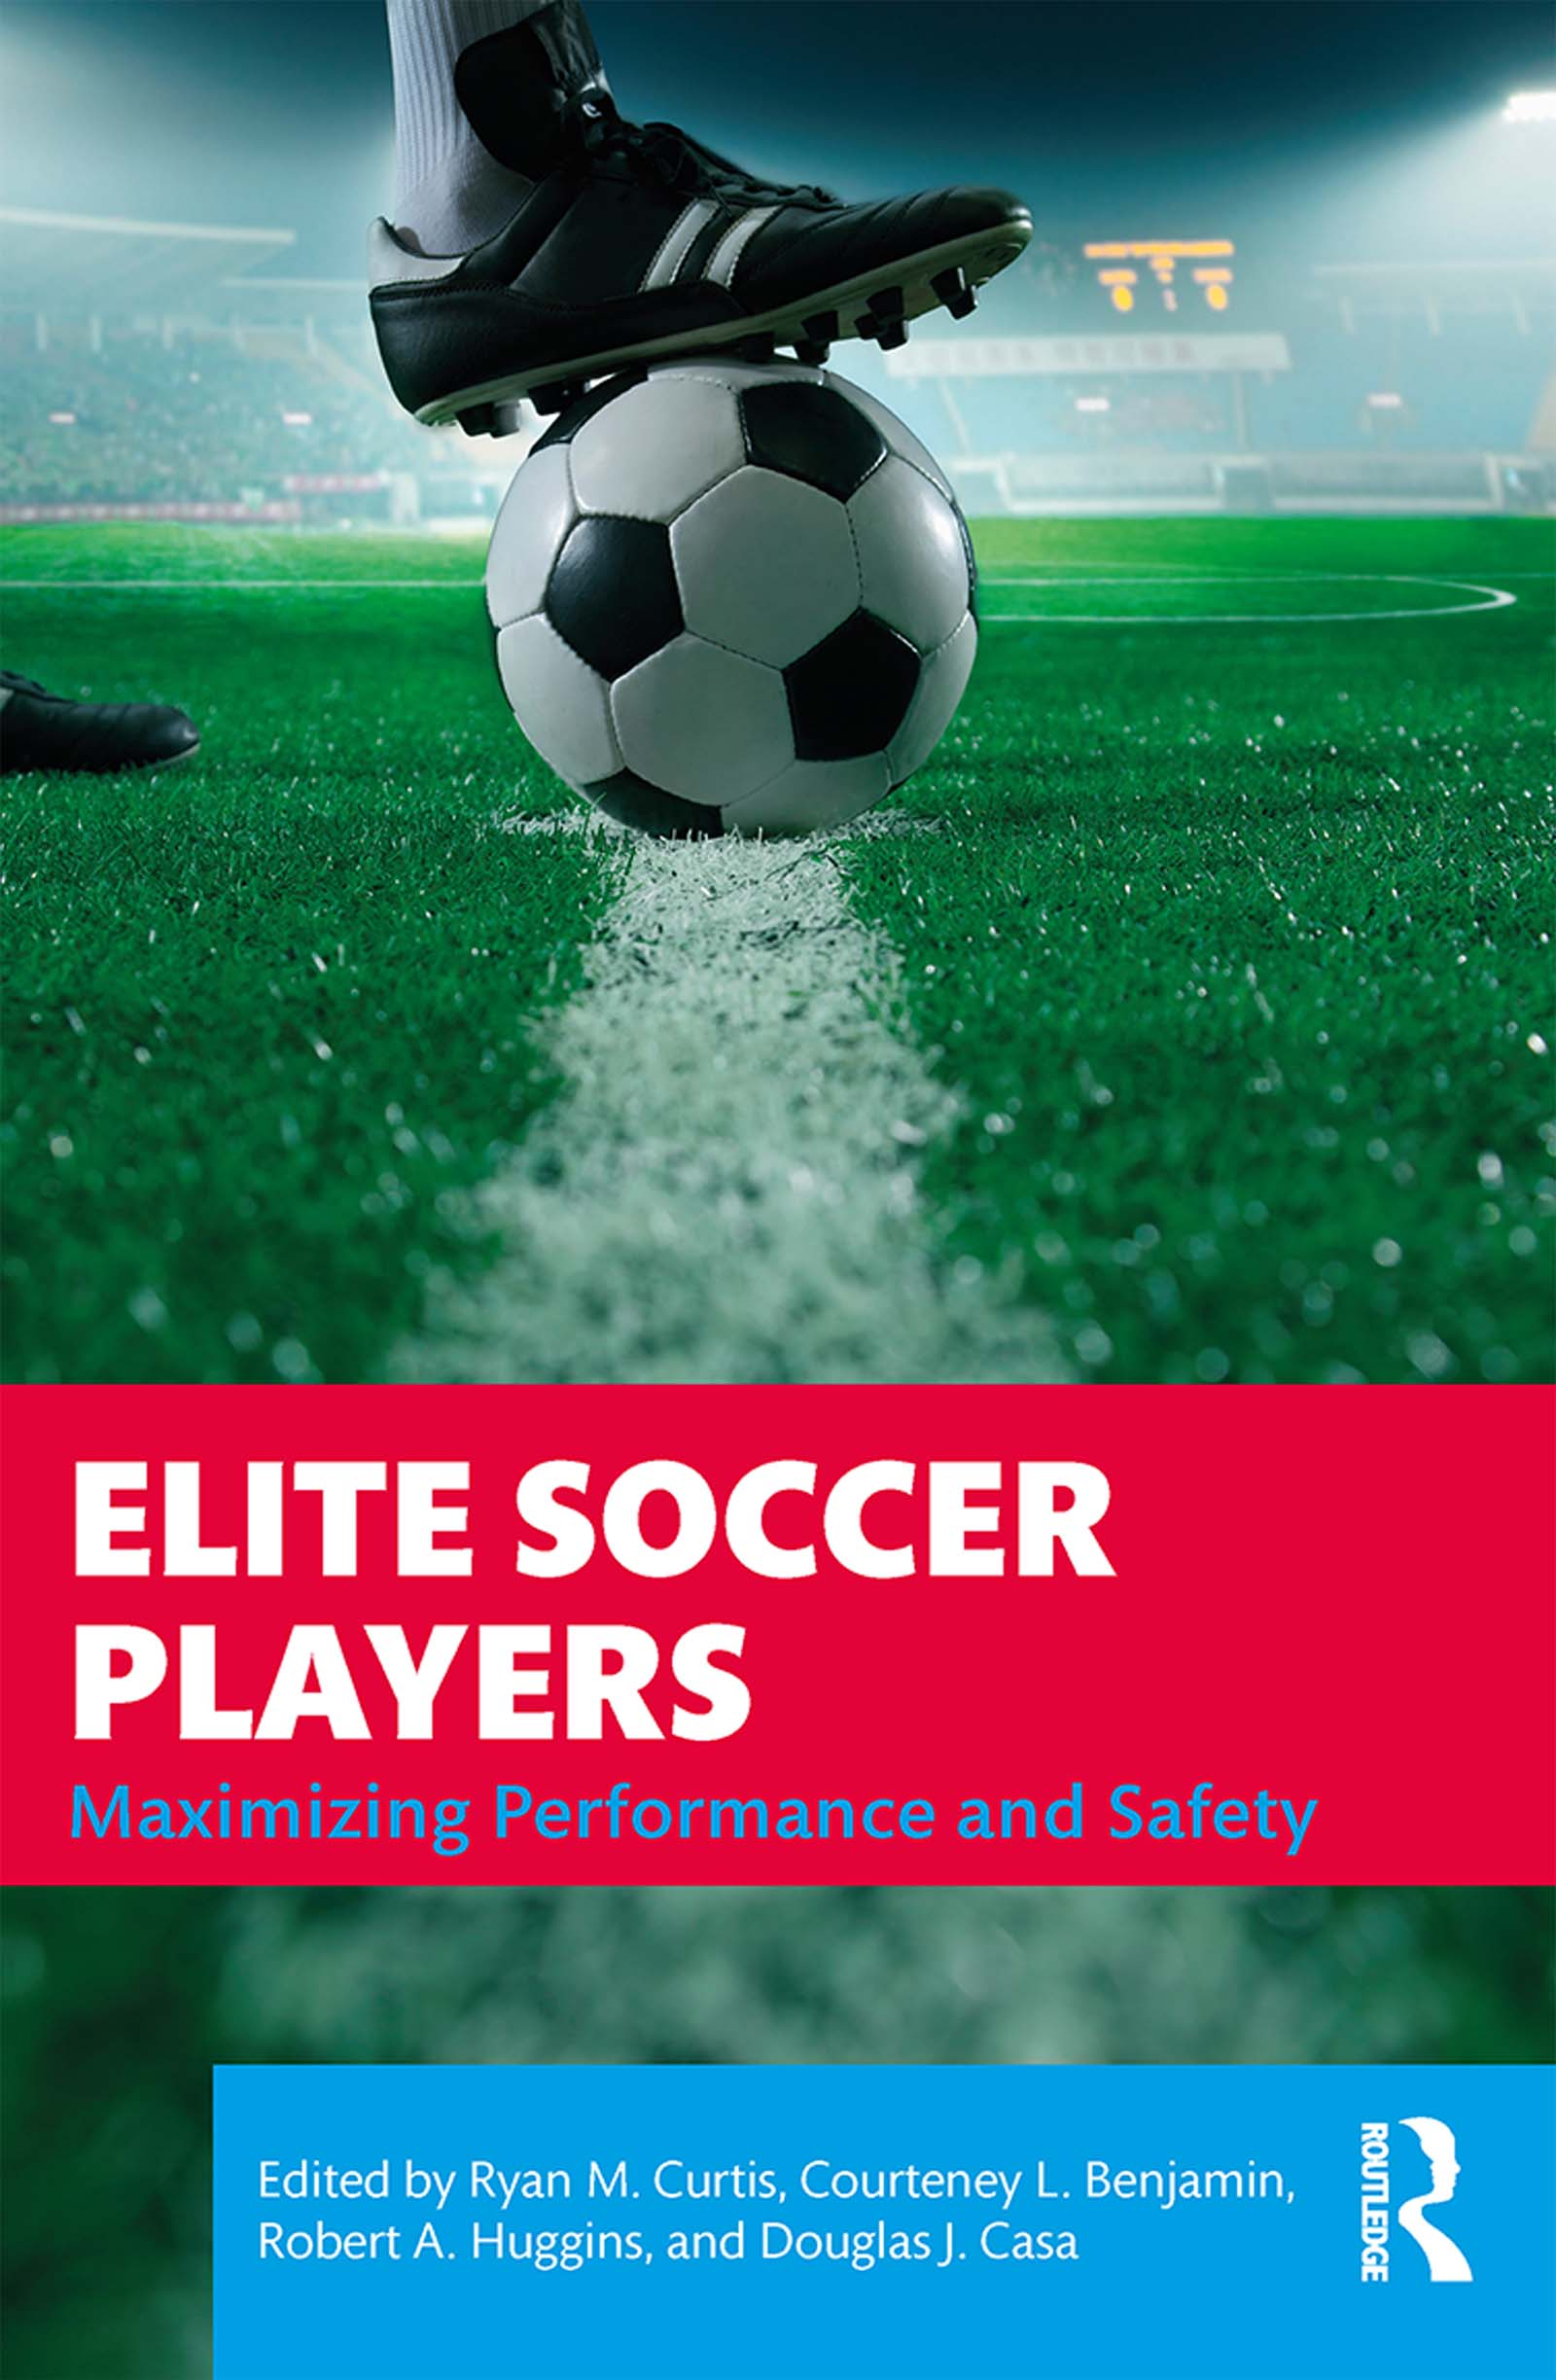 Elite Soccer Players: Maximizing Performance and Safety book cover